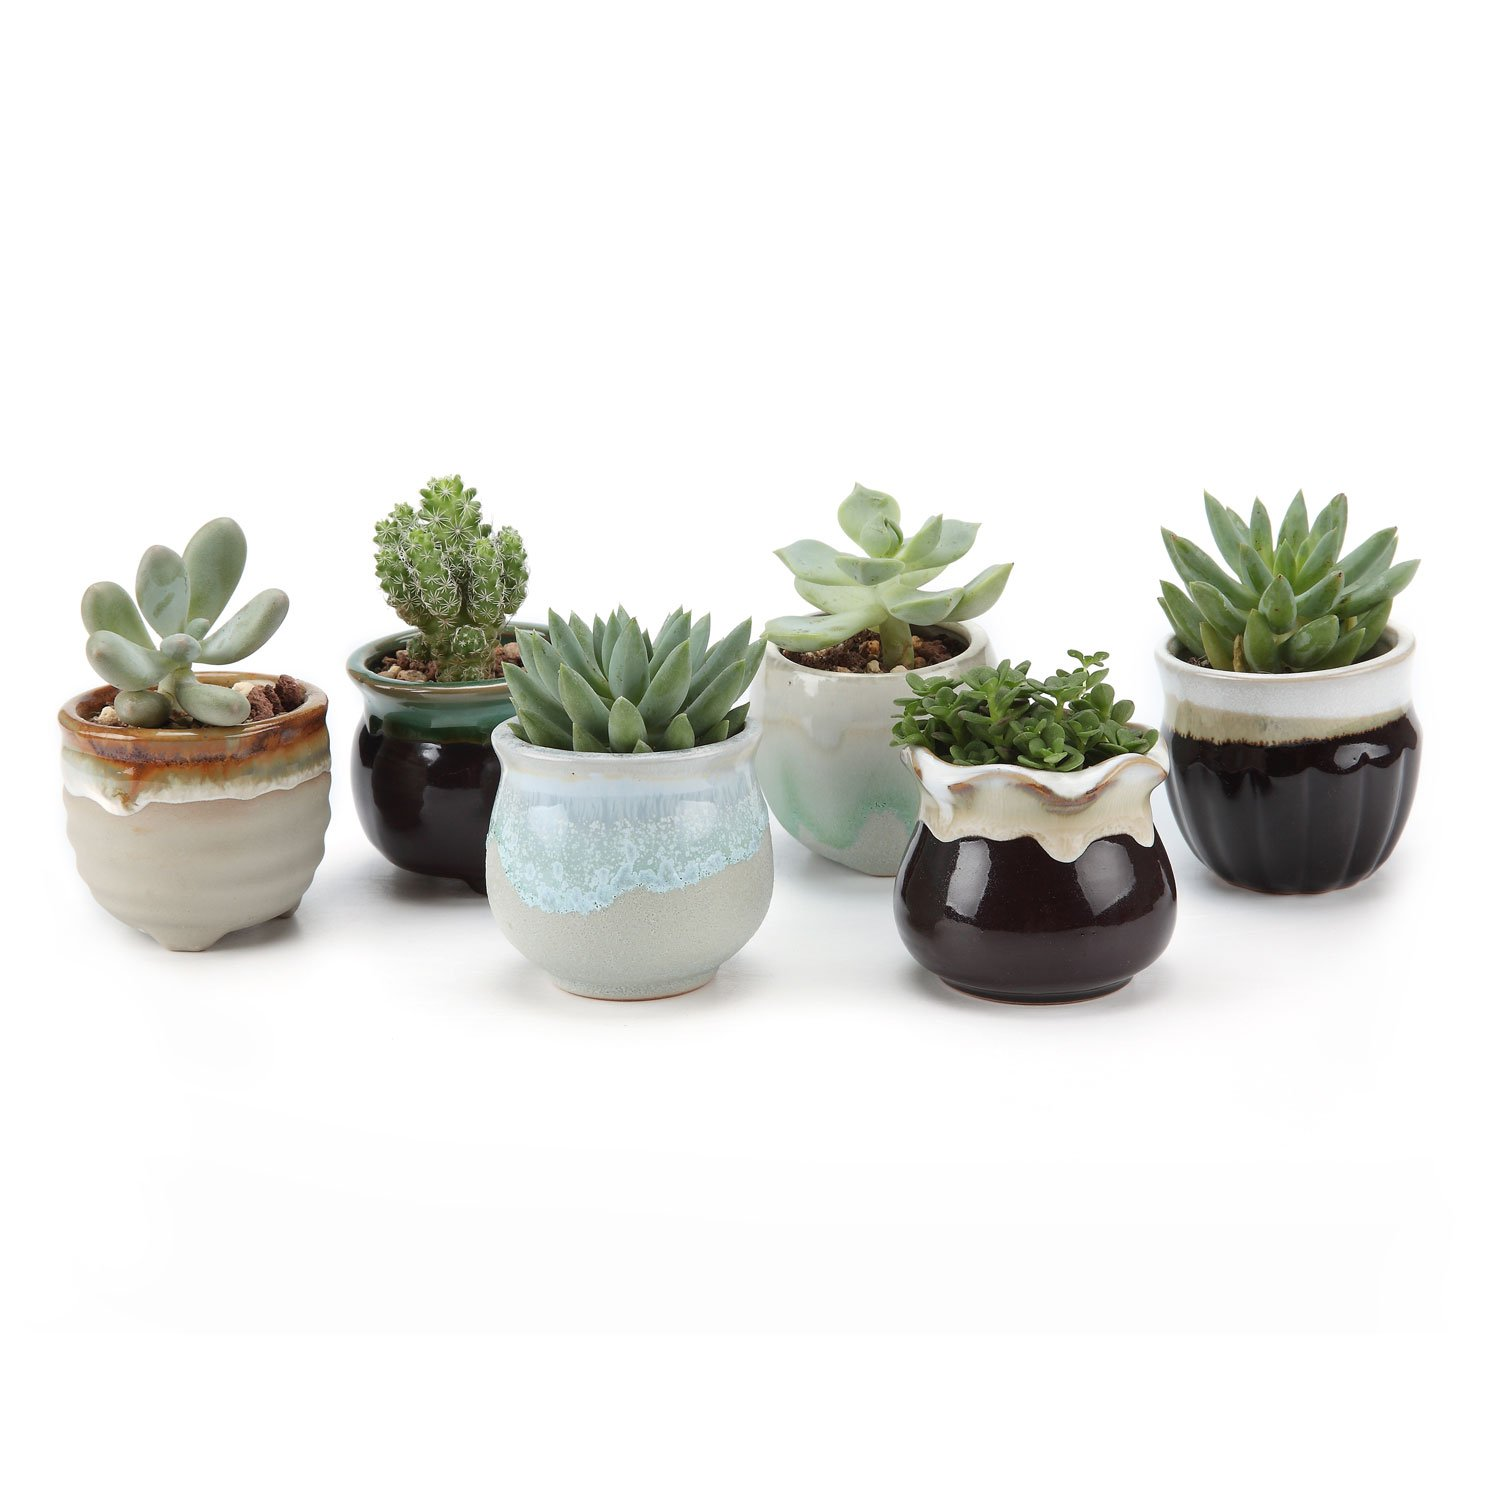 T4U 2.5 Inch Ceramic Succulent Pot,Cactus Planter Pot Plant Container Flower Pot Flowing Glaze Black&White Serial for Christmas Gift Pack of 6 by T4U